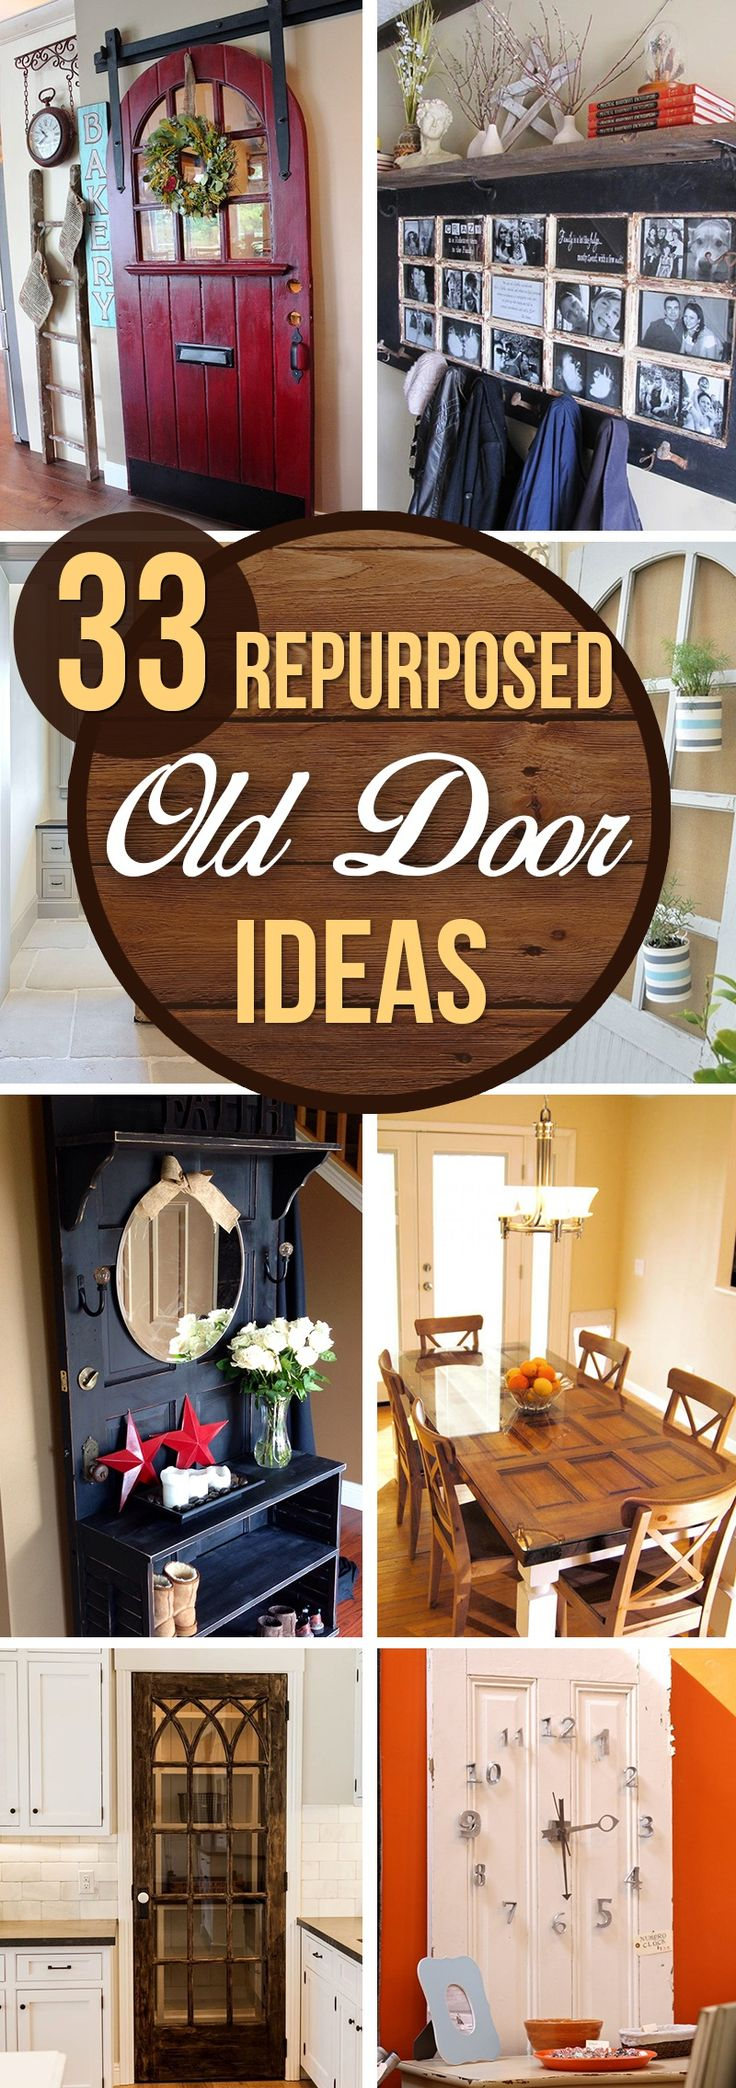 Whether you want to salvage an adorable arched entry door fit for an elf's cottage or an elaborately carved architectural panel door fit for a king's dressing room, there are many great repurposed old door ideas to be found. Detached doors abound because the craftsmanship of yesteryear produced ...